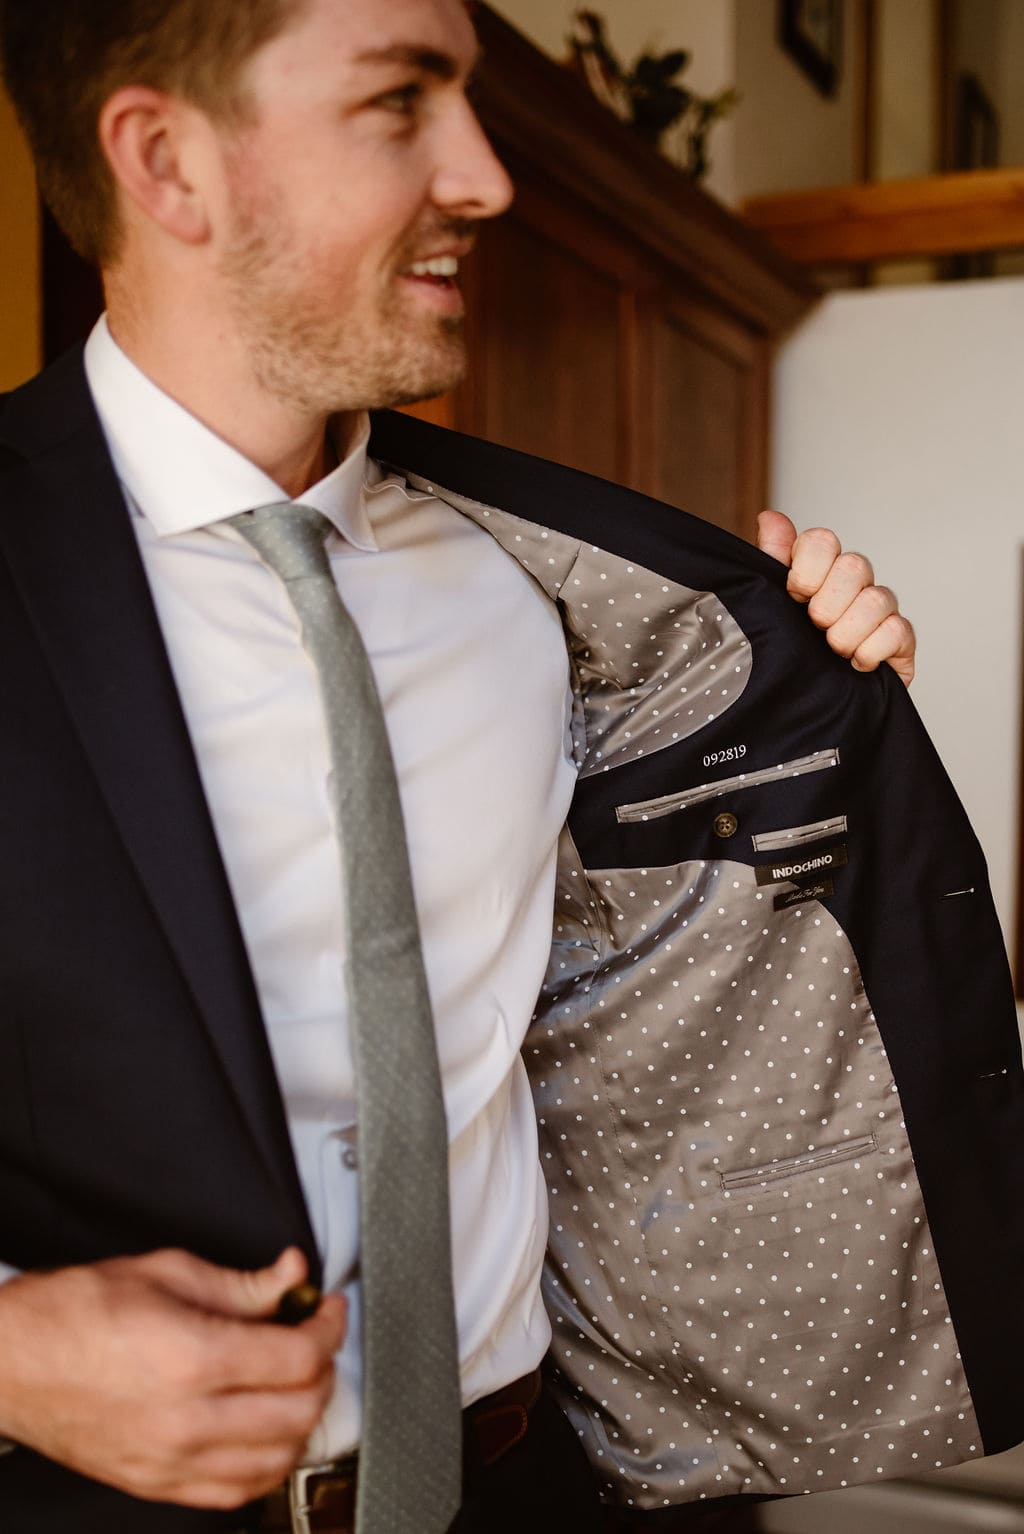 Wedding date sewn into grooms suit jacket